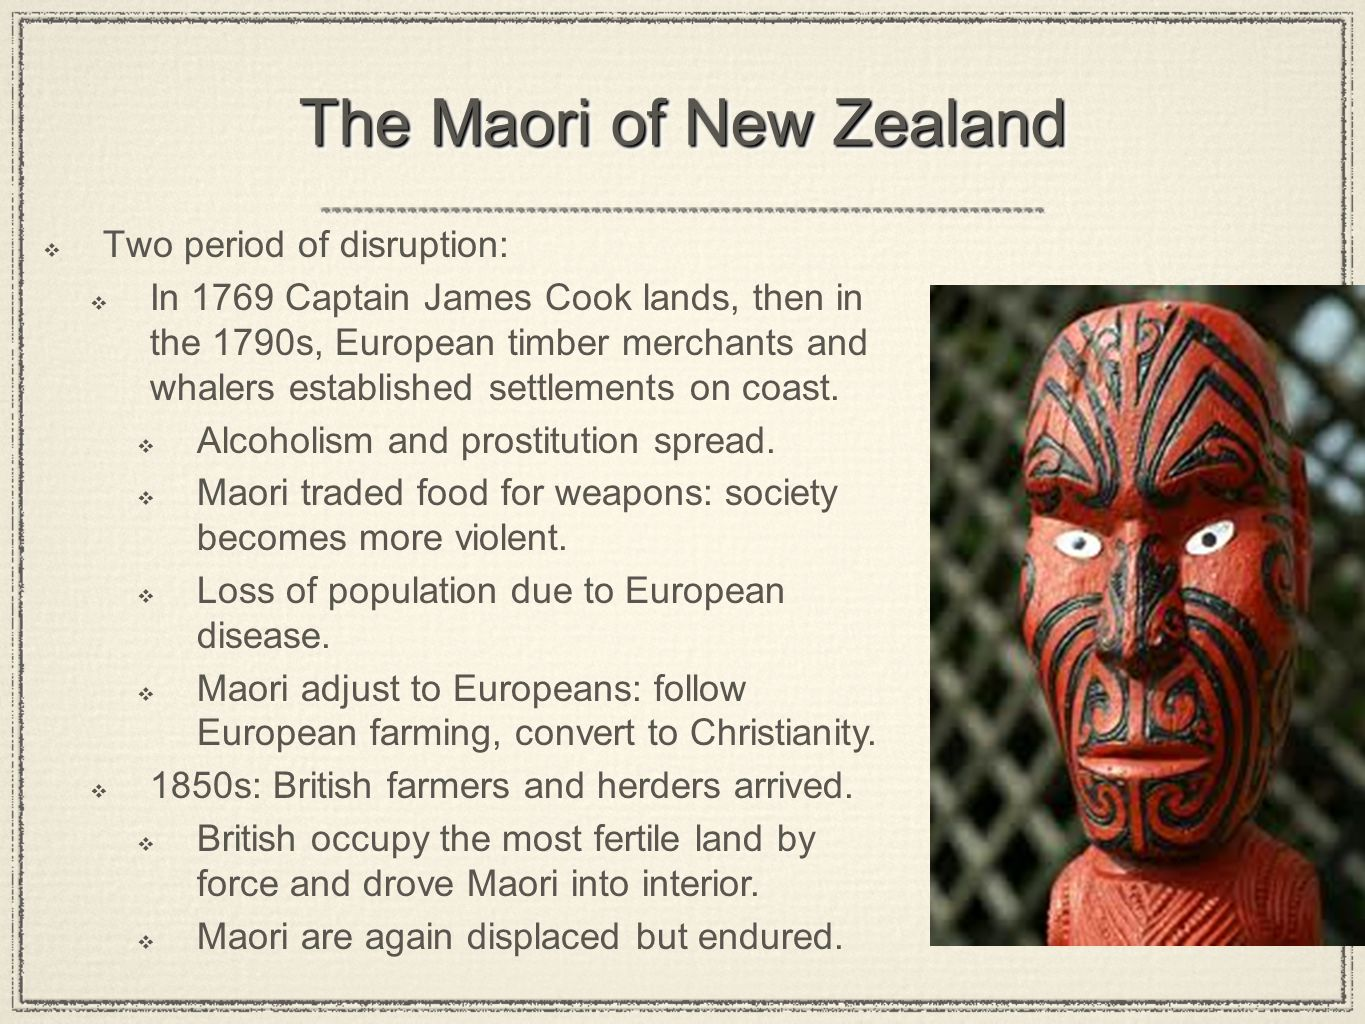 The Maori of New Zealand